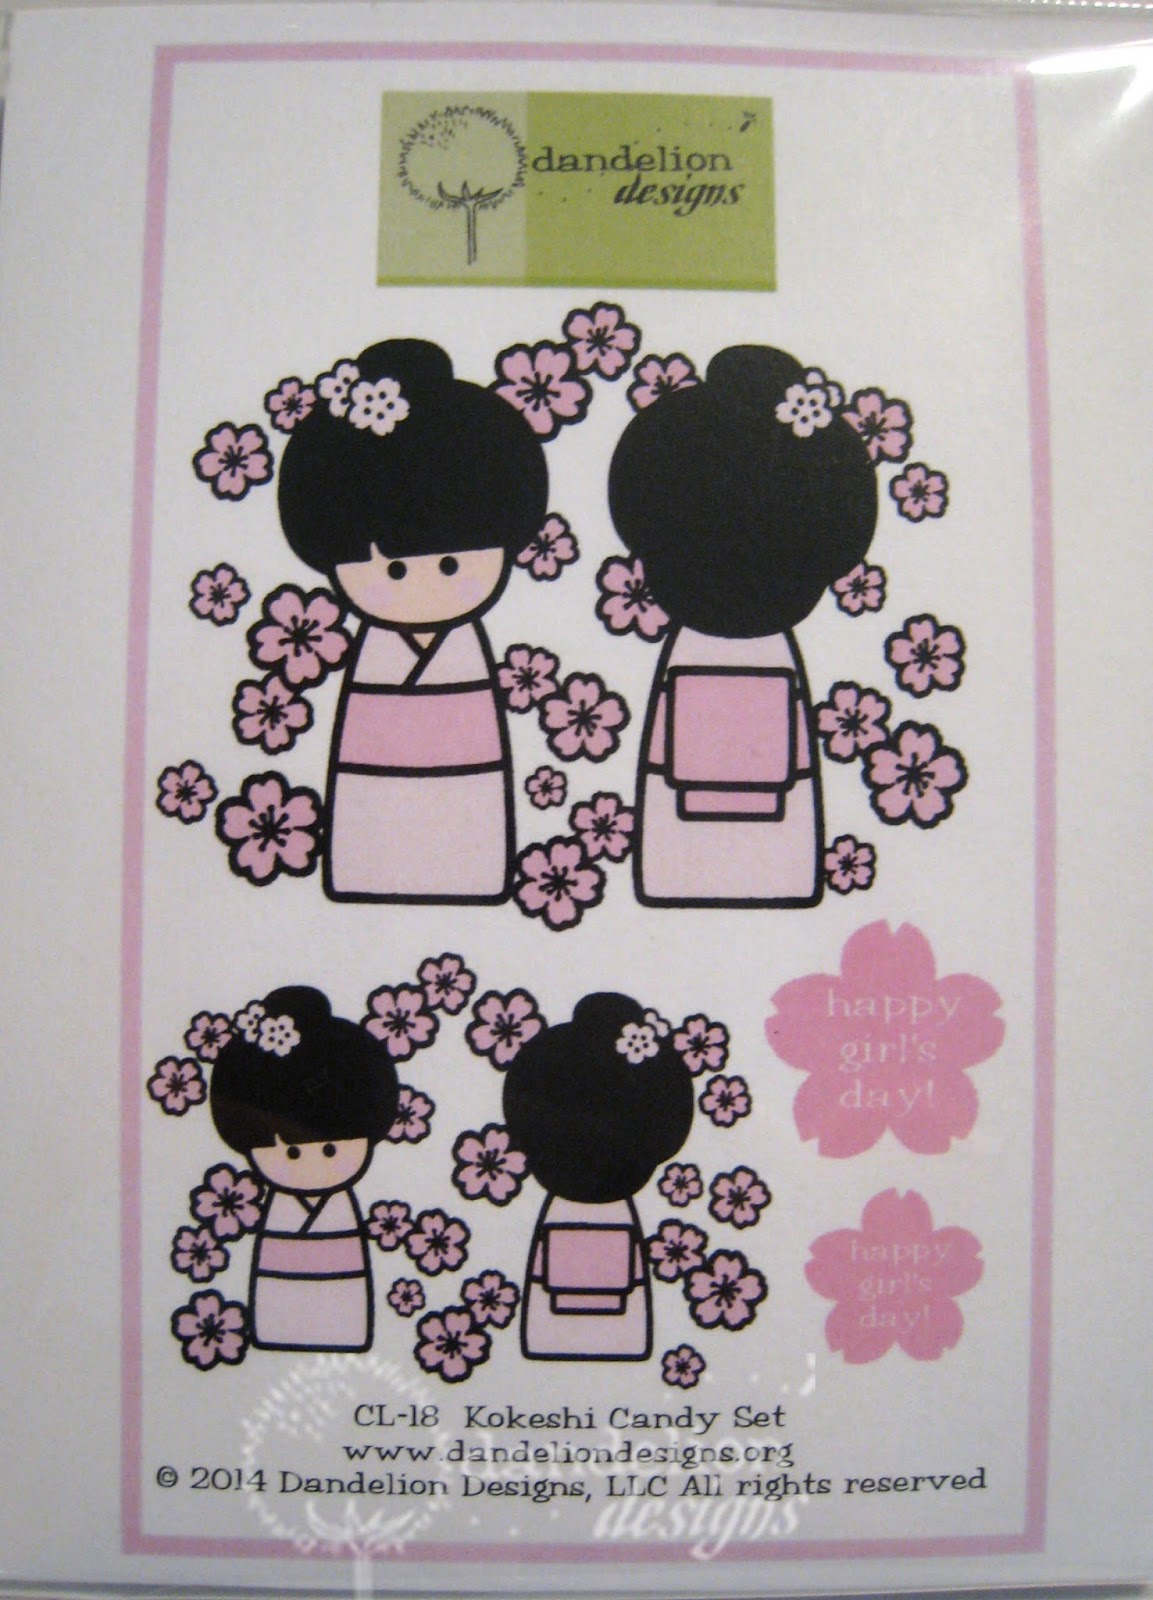 Dandelion Designs New Stamps Kokeshi Candy